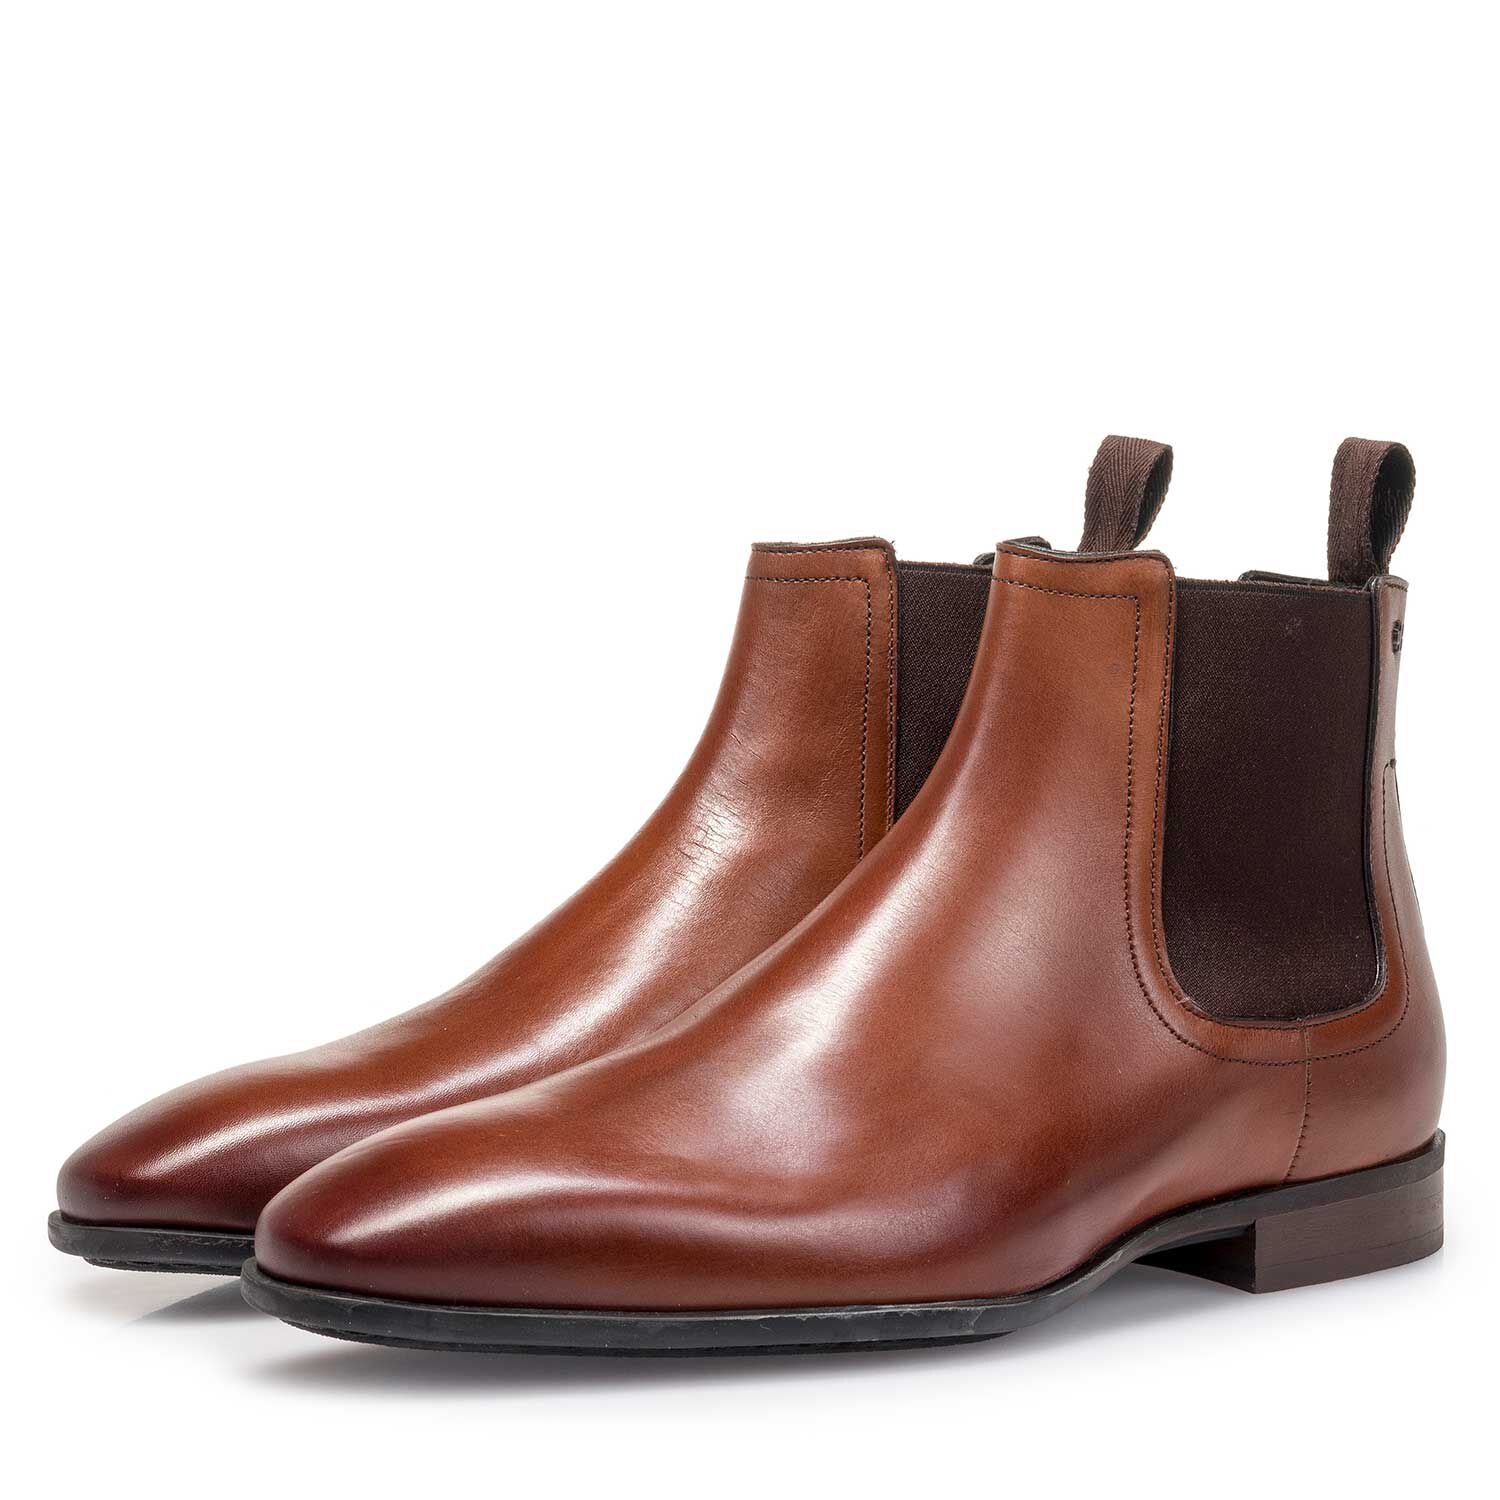 Floris van Bommel Boots Collection